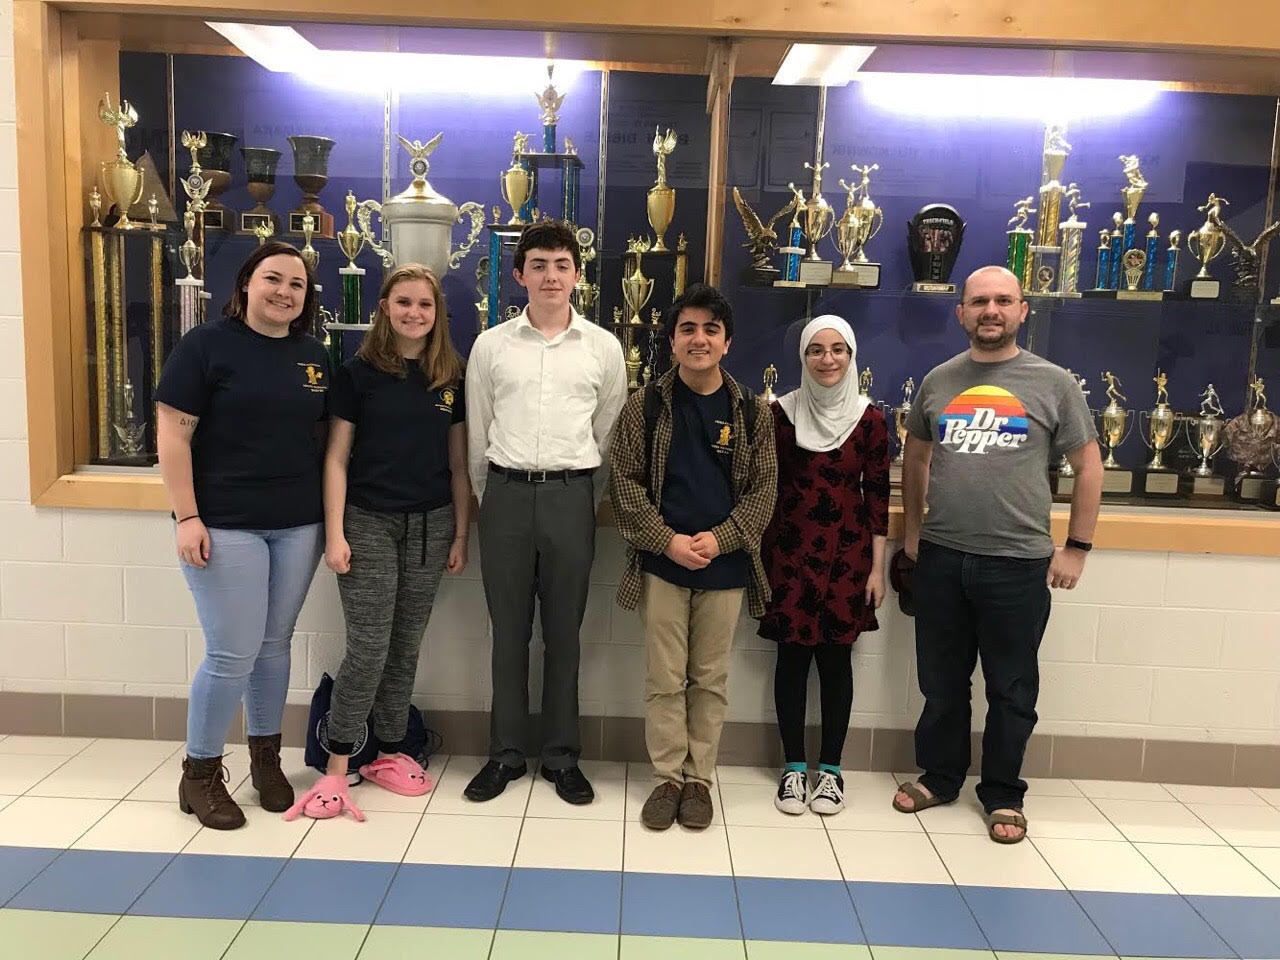 From left; Ms. Megan Rebman, Courtney Galligher, Quentin Phillips(third from left), Vincent Mangano , Nour Goulmamine, and Mr. Daniel Cheatham. Midlo Forensics competed at King George High School for the Super Regionals.   Quentin Phillips went on to win a silver medals at the state competition.